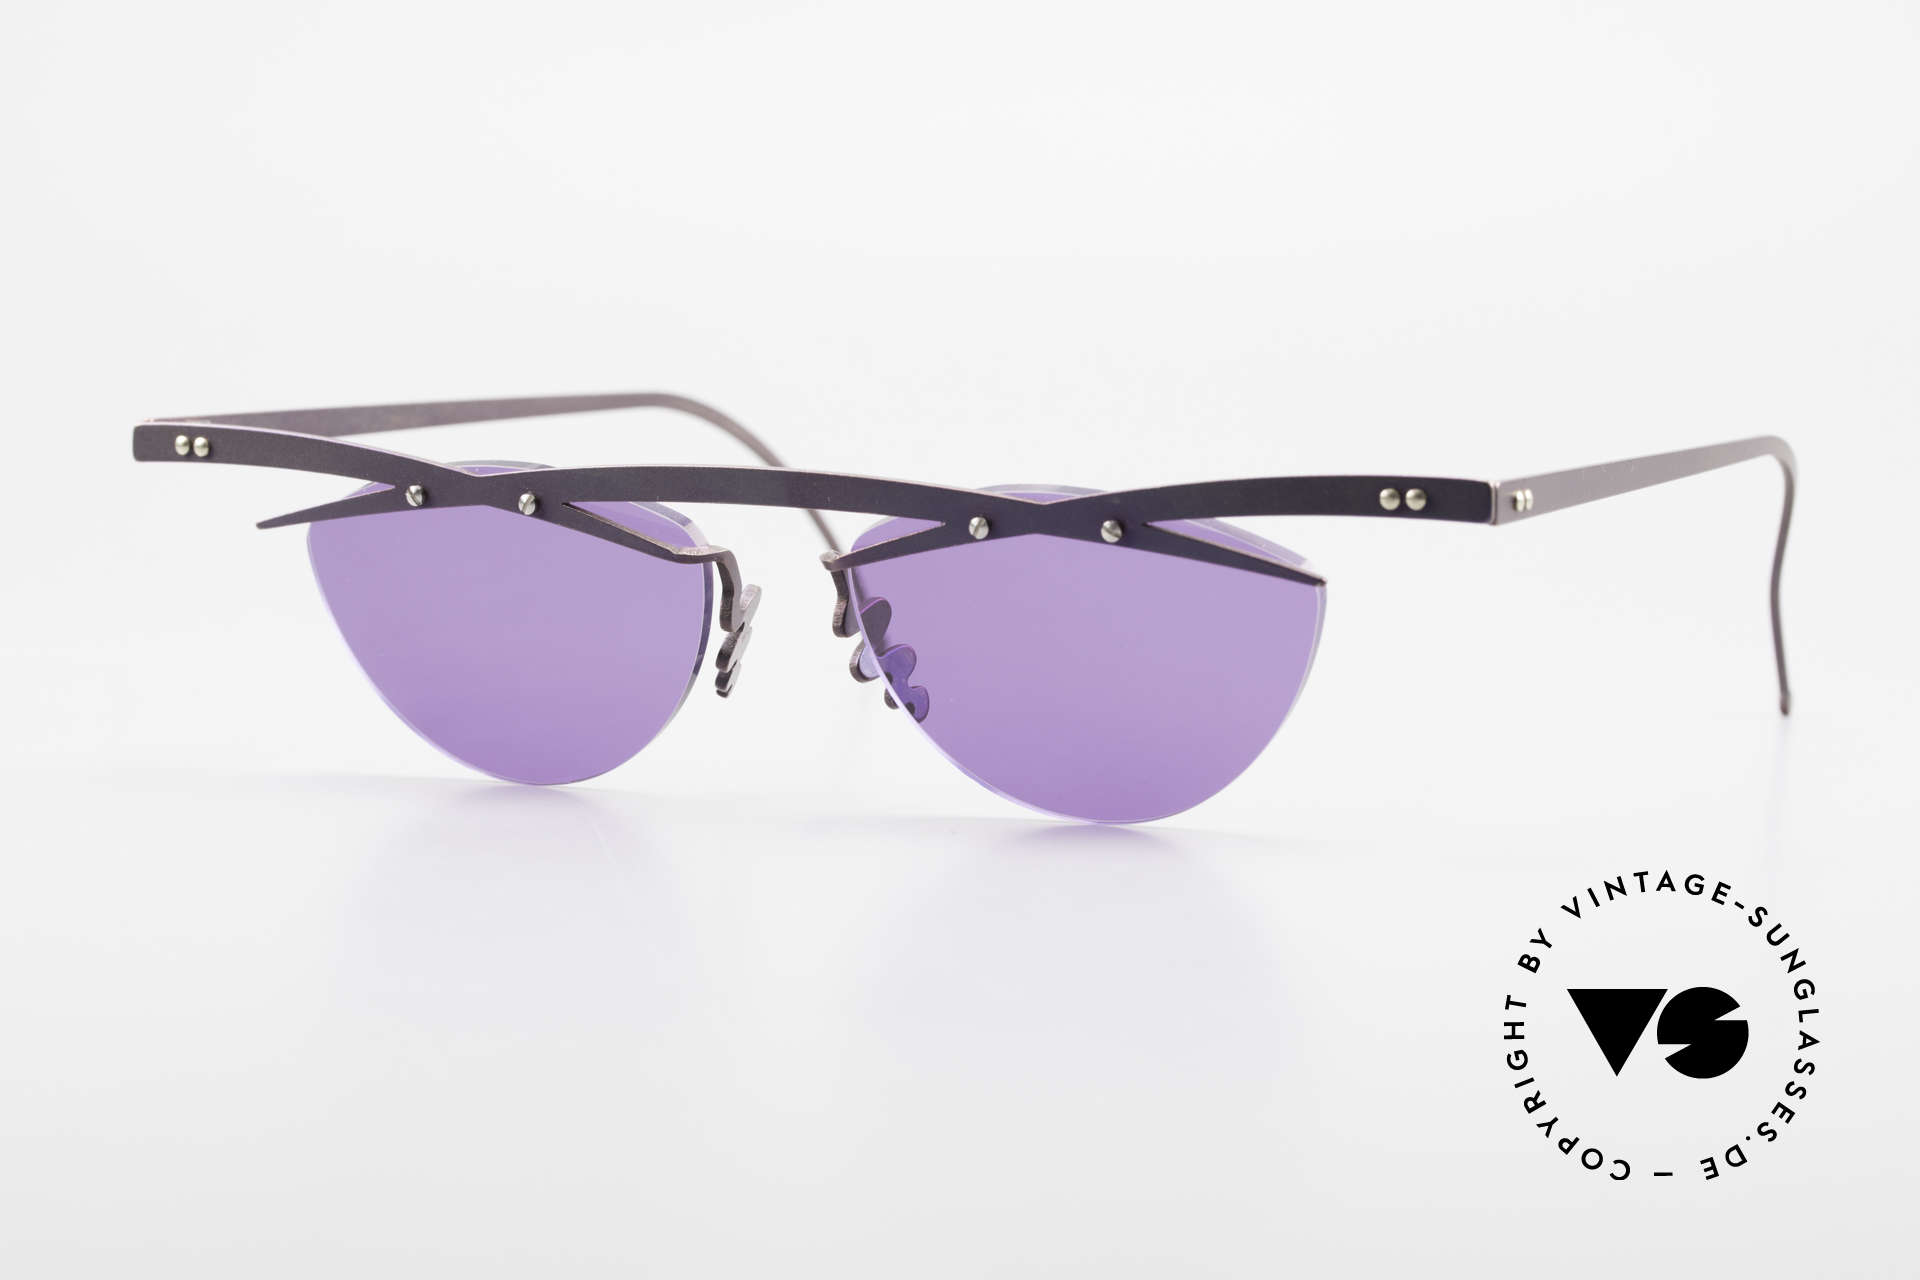 Theo Belgium Tita III 4 XL Crazy Vintage Sunglasses, Theo Belgium: the most self-willed brand in the world, Made for Men and Women